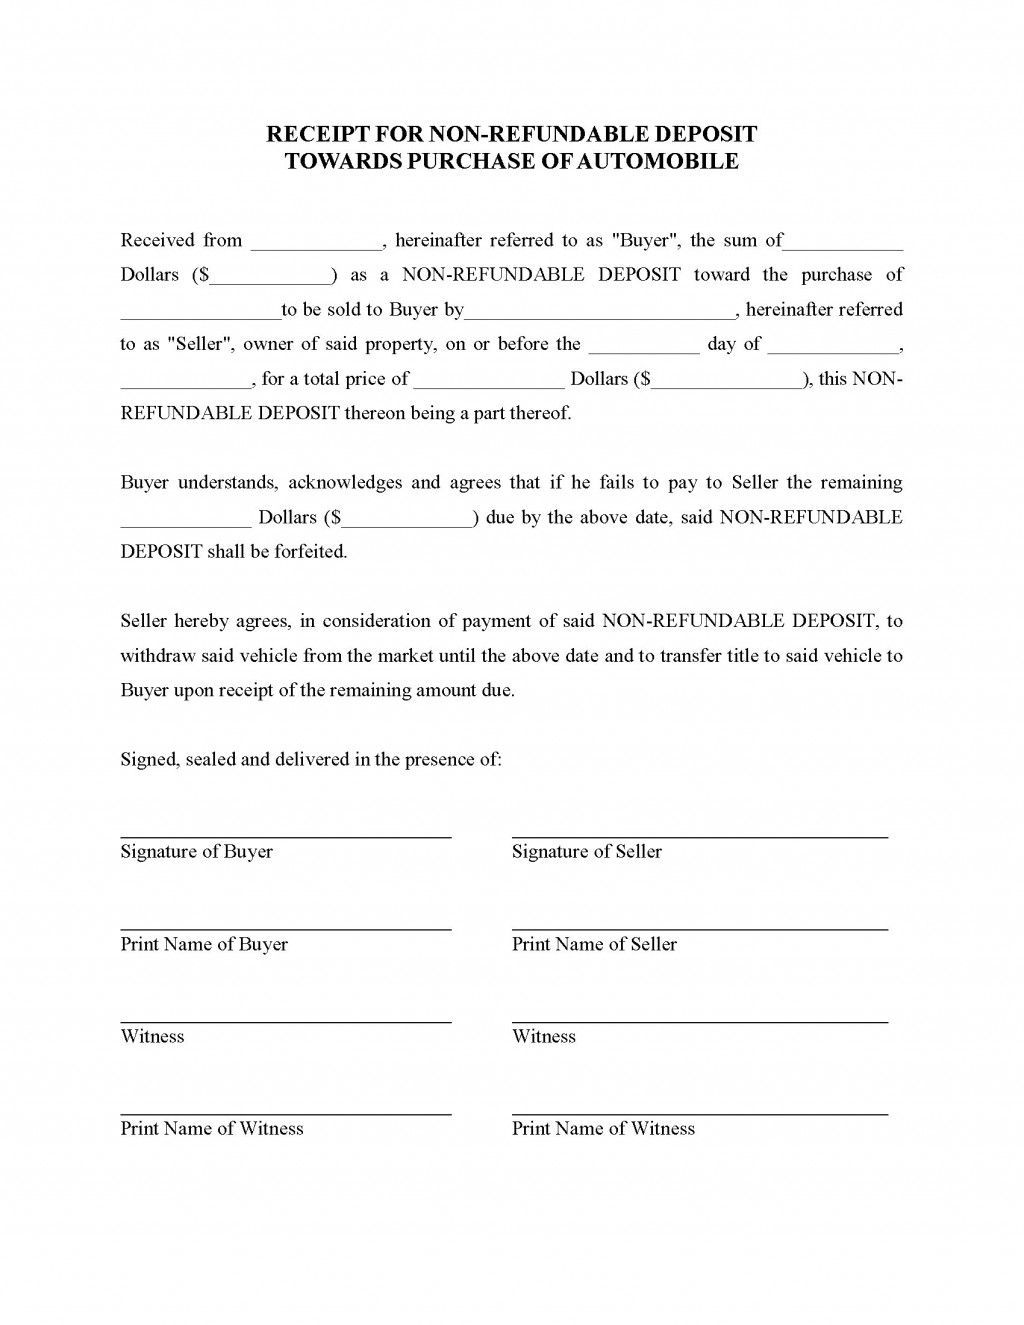 005 Awful Sale Agreement Template Australia Inspiration  Busines Horse Car ContractLarge